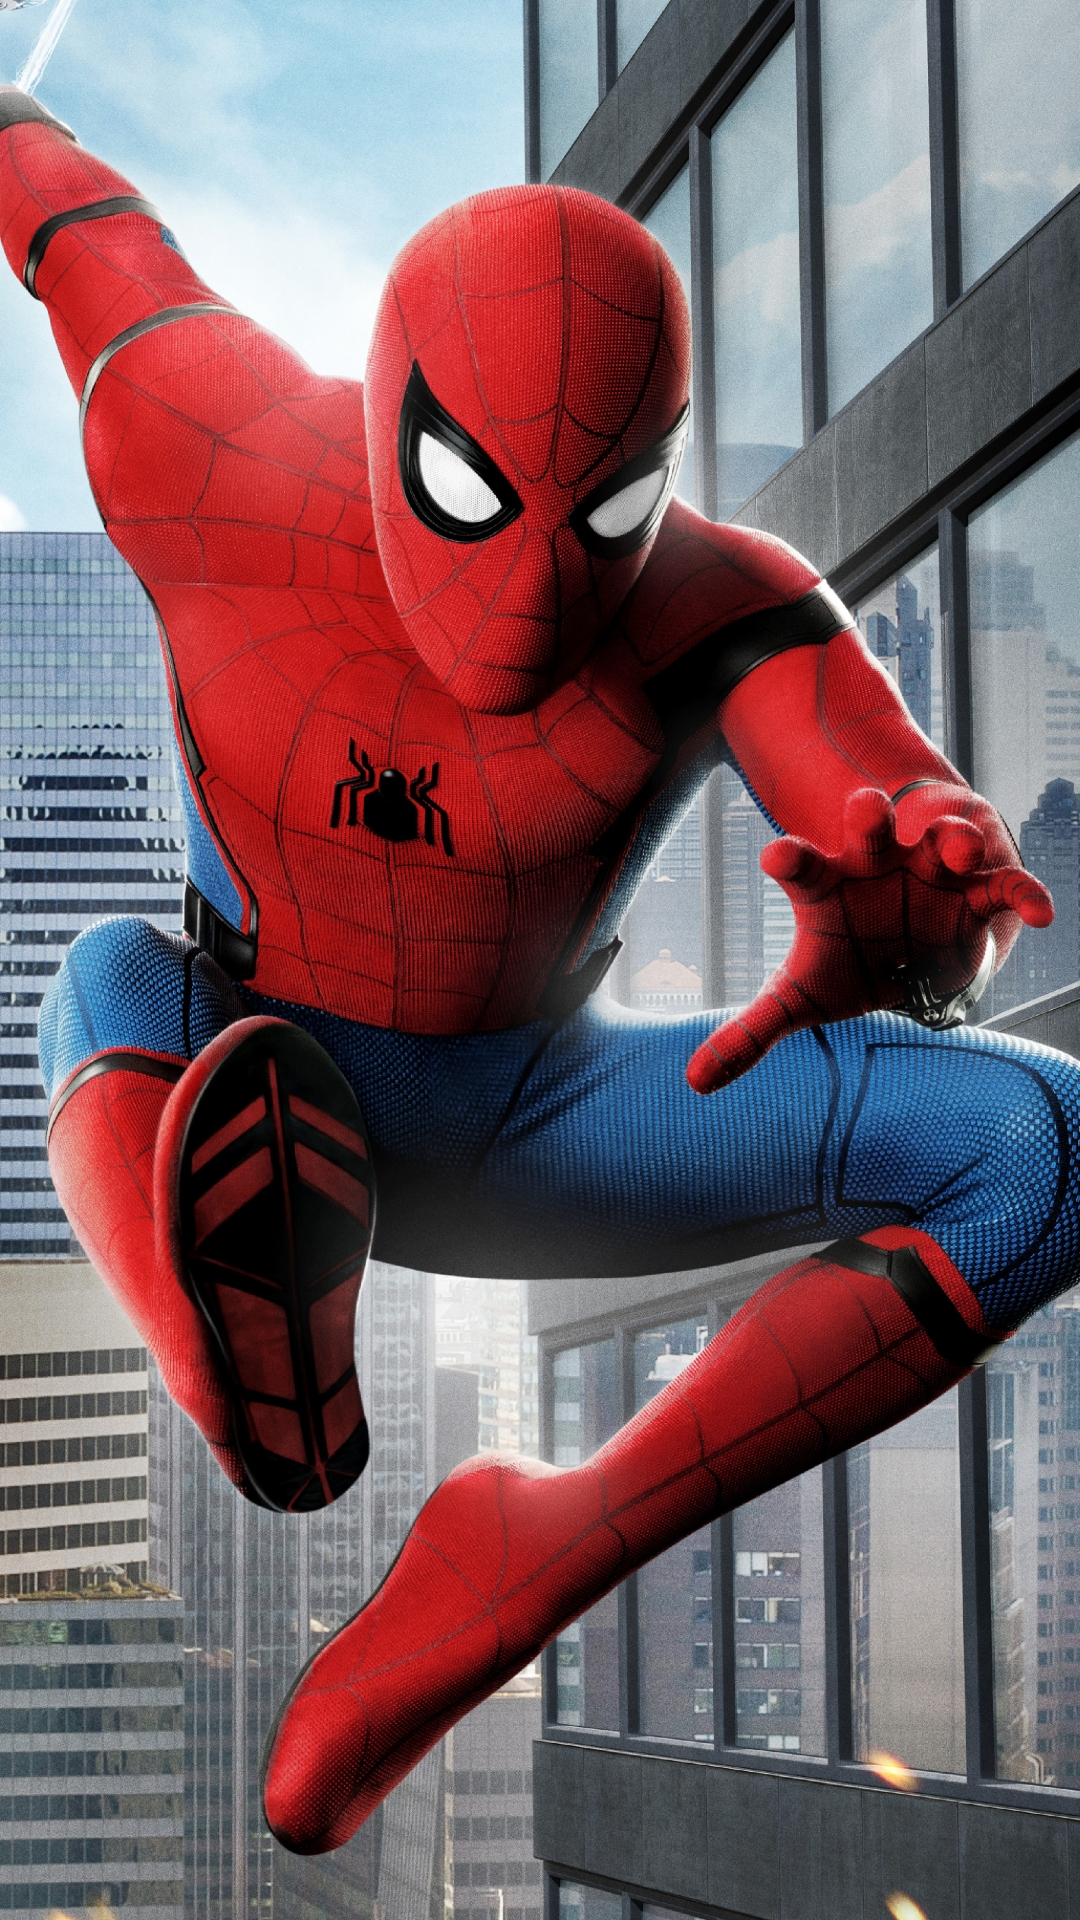 Movie Spider Man Homecoming 1080x1920 Wallpaper ID 685322